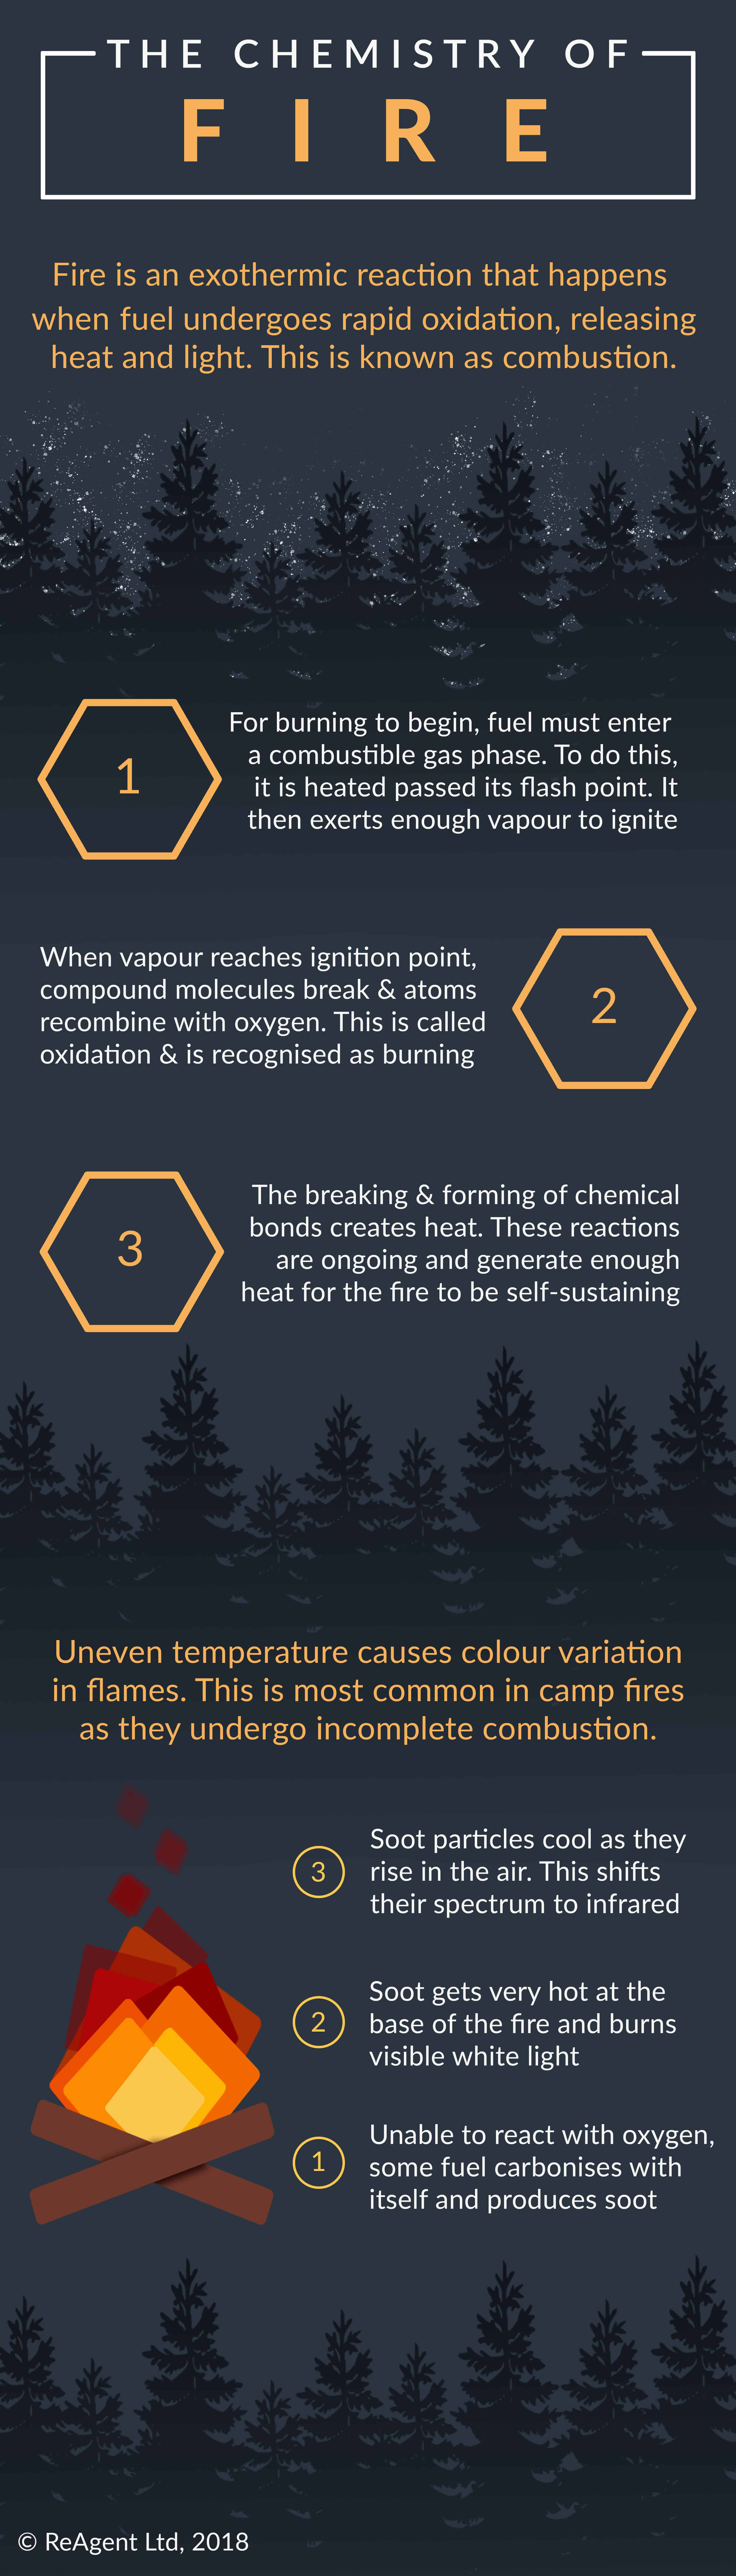 An infographic that explains the chemistry of fire